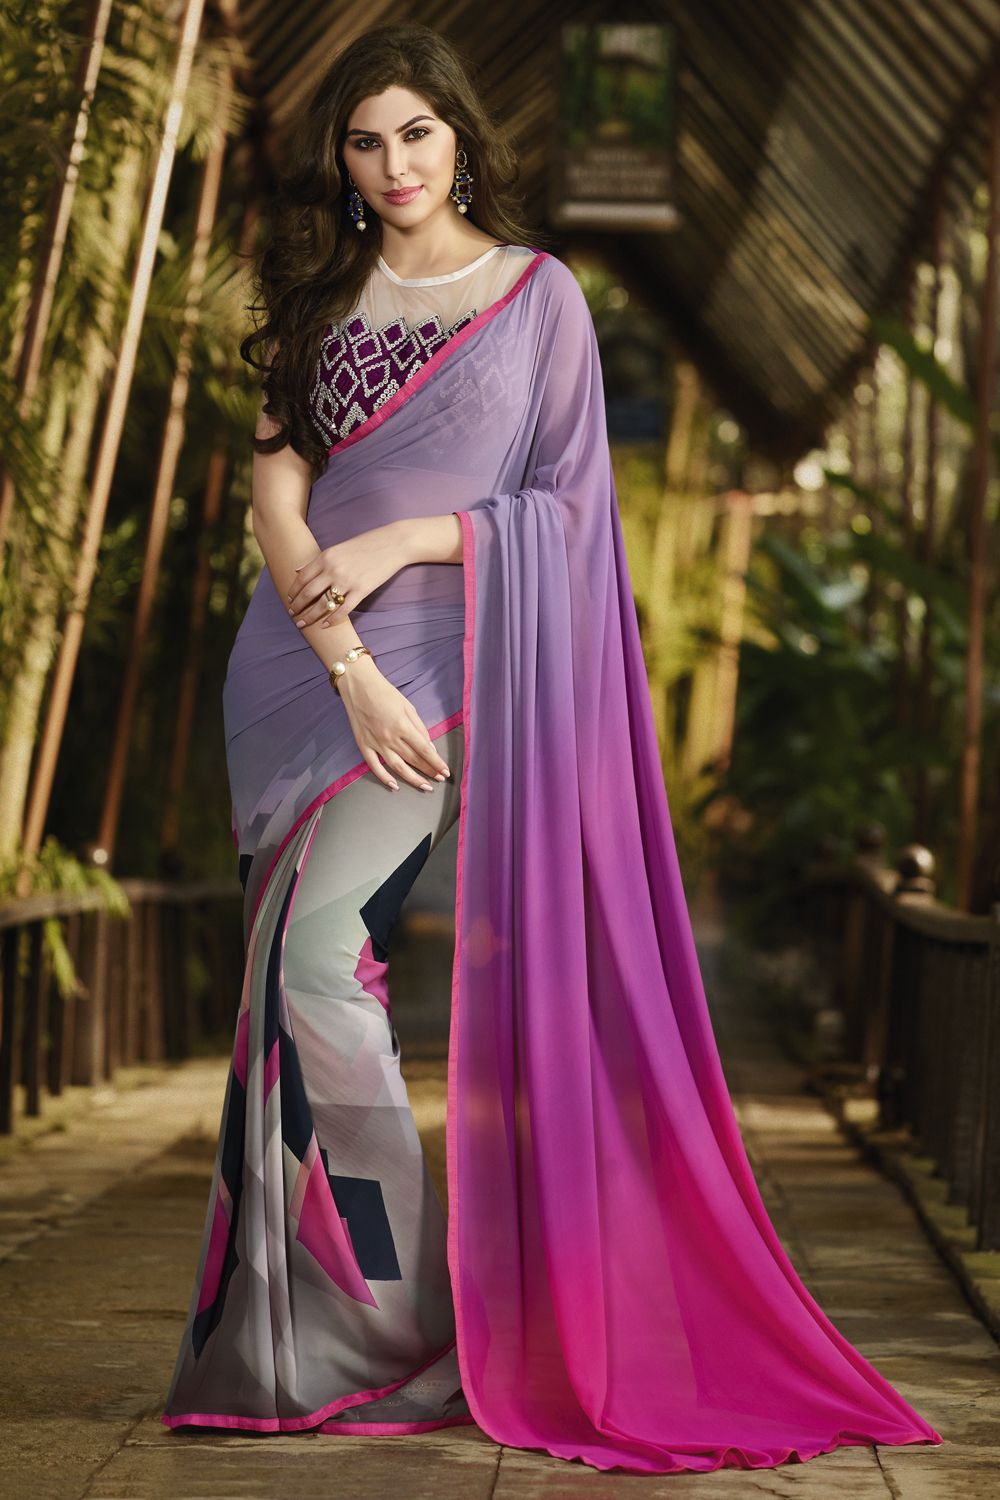 Exclusive Unique Georgette Sarees Rich Pink N Elephant Grey Combination To Wow The Viewers